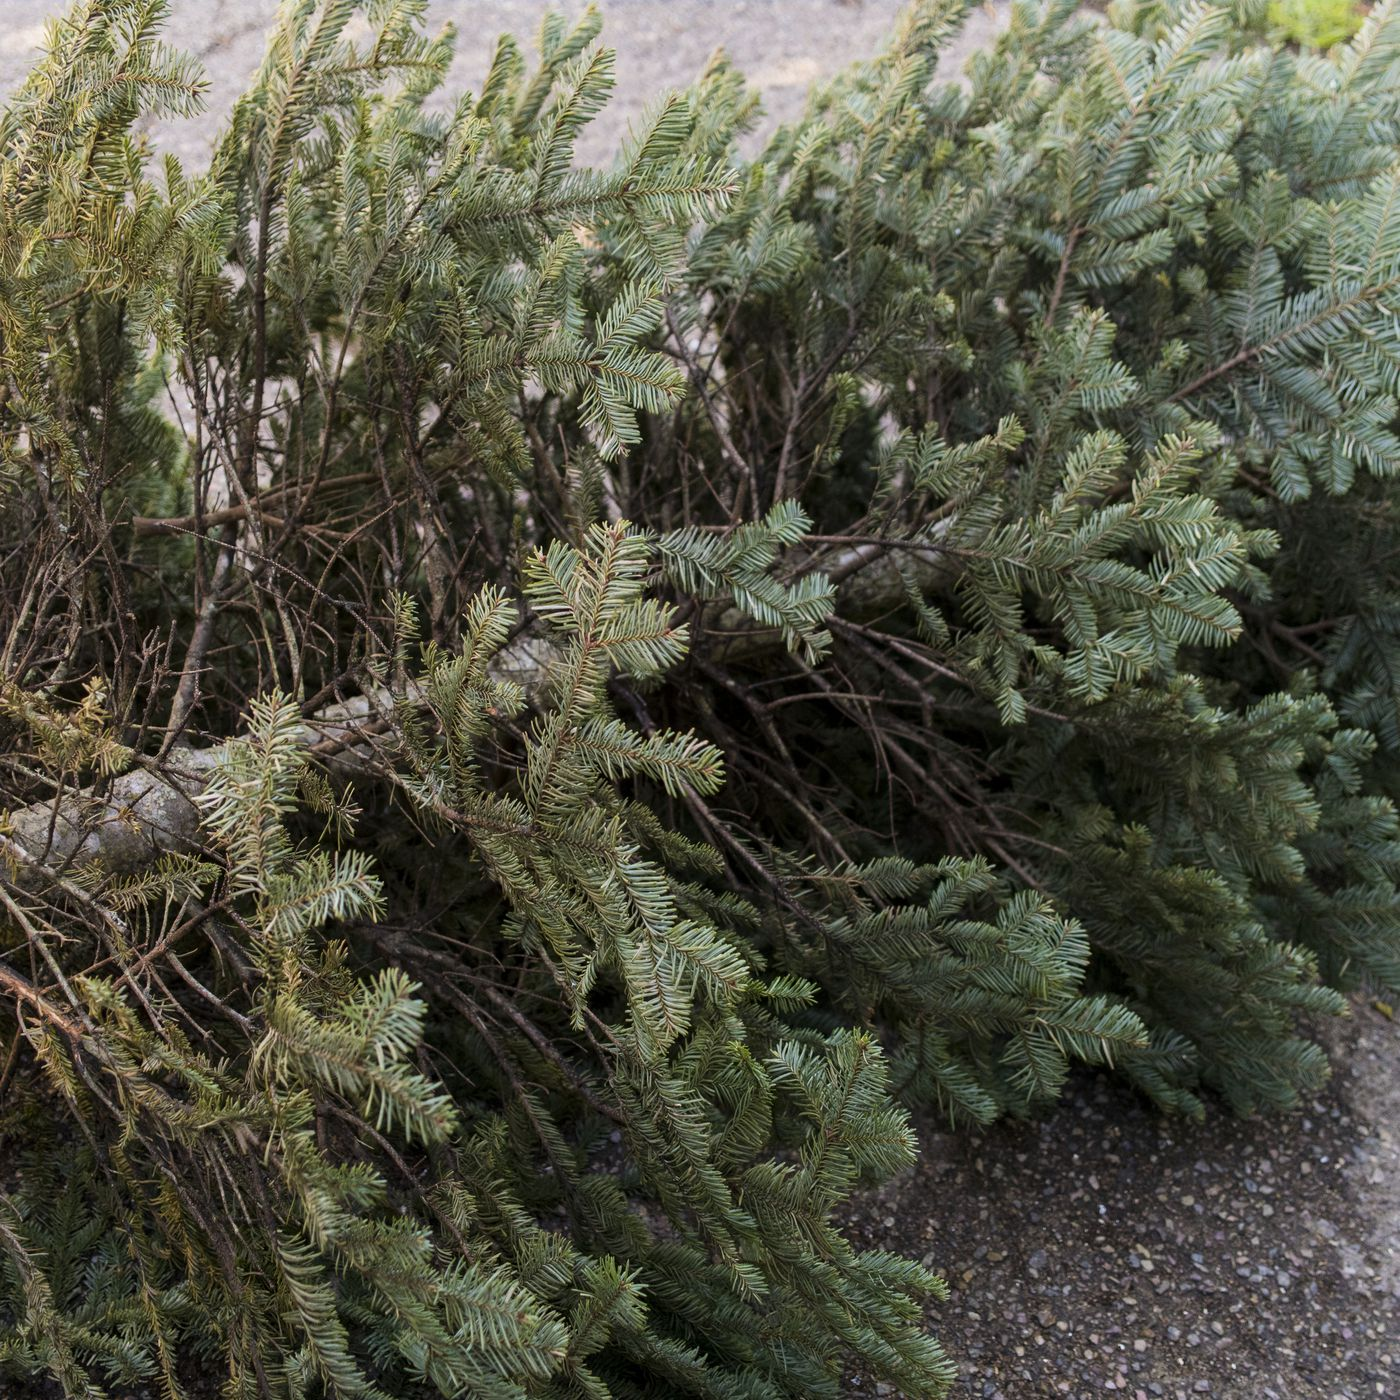 How to get rid of your Christmas tree in Austin - Curbed Austin